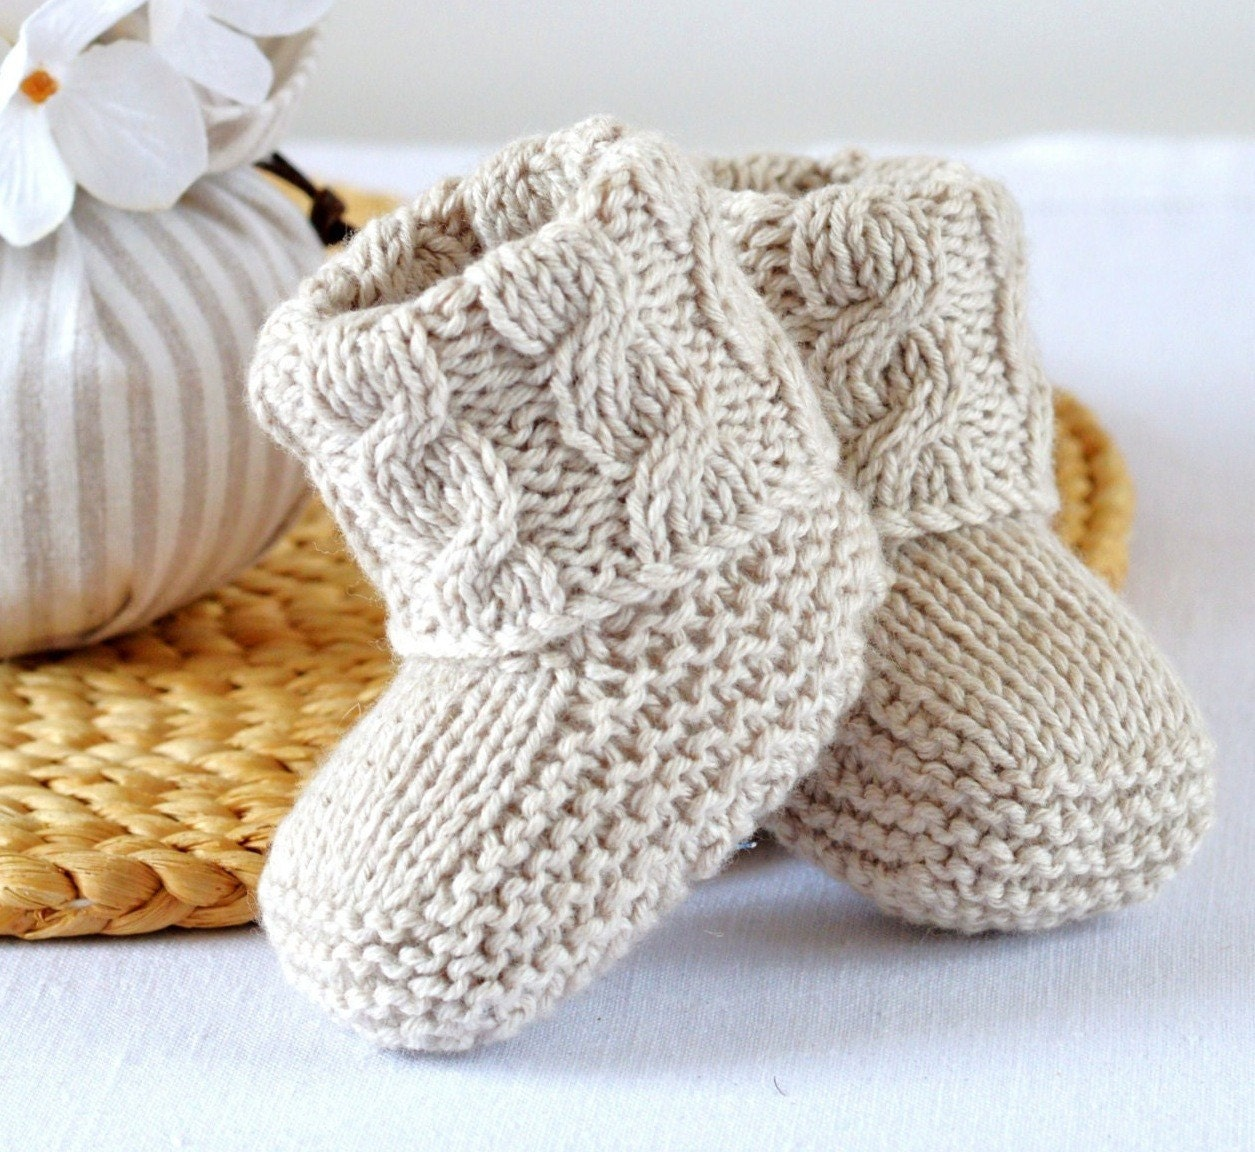 Knitting Ideas For Babies : Knitting pattern baby booties cable aran shoes quick and